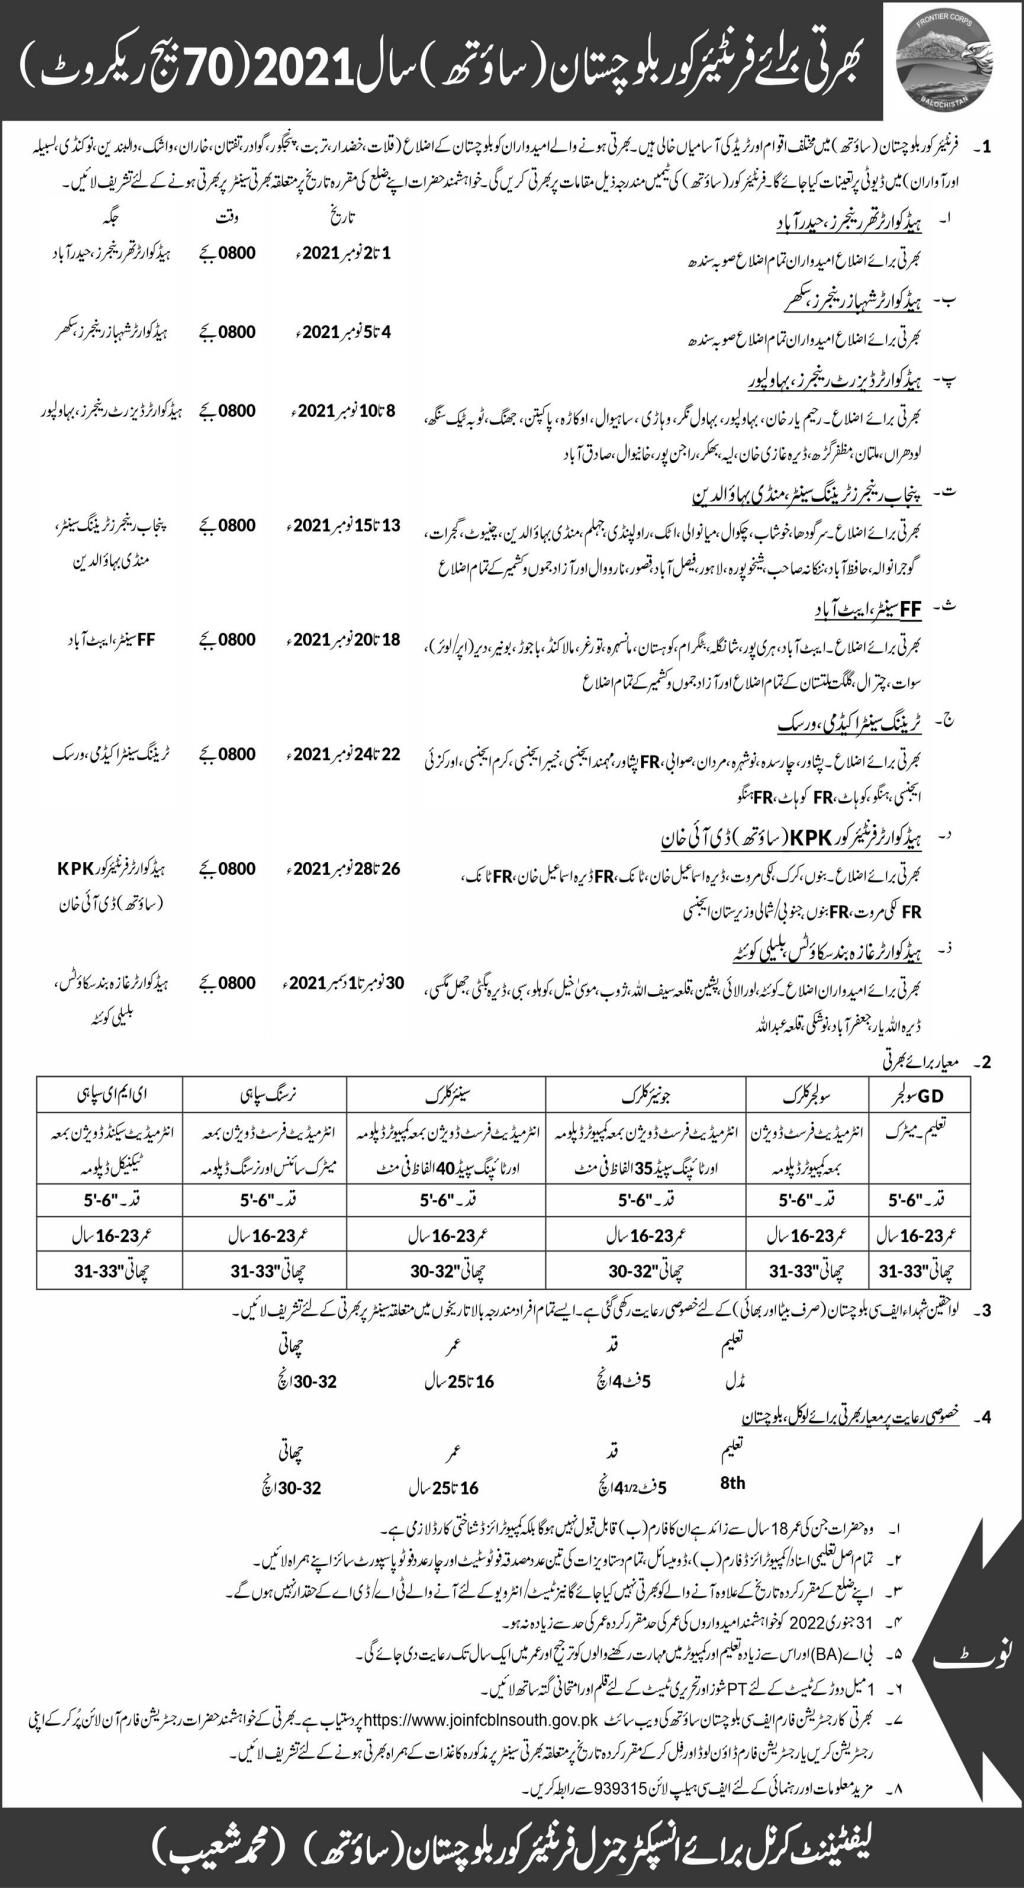 Announcement of Jobs in Frontier Corps South 2021